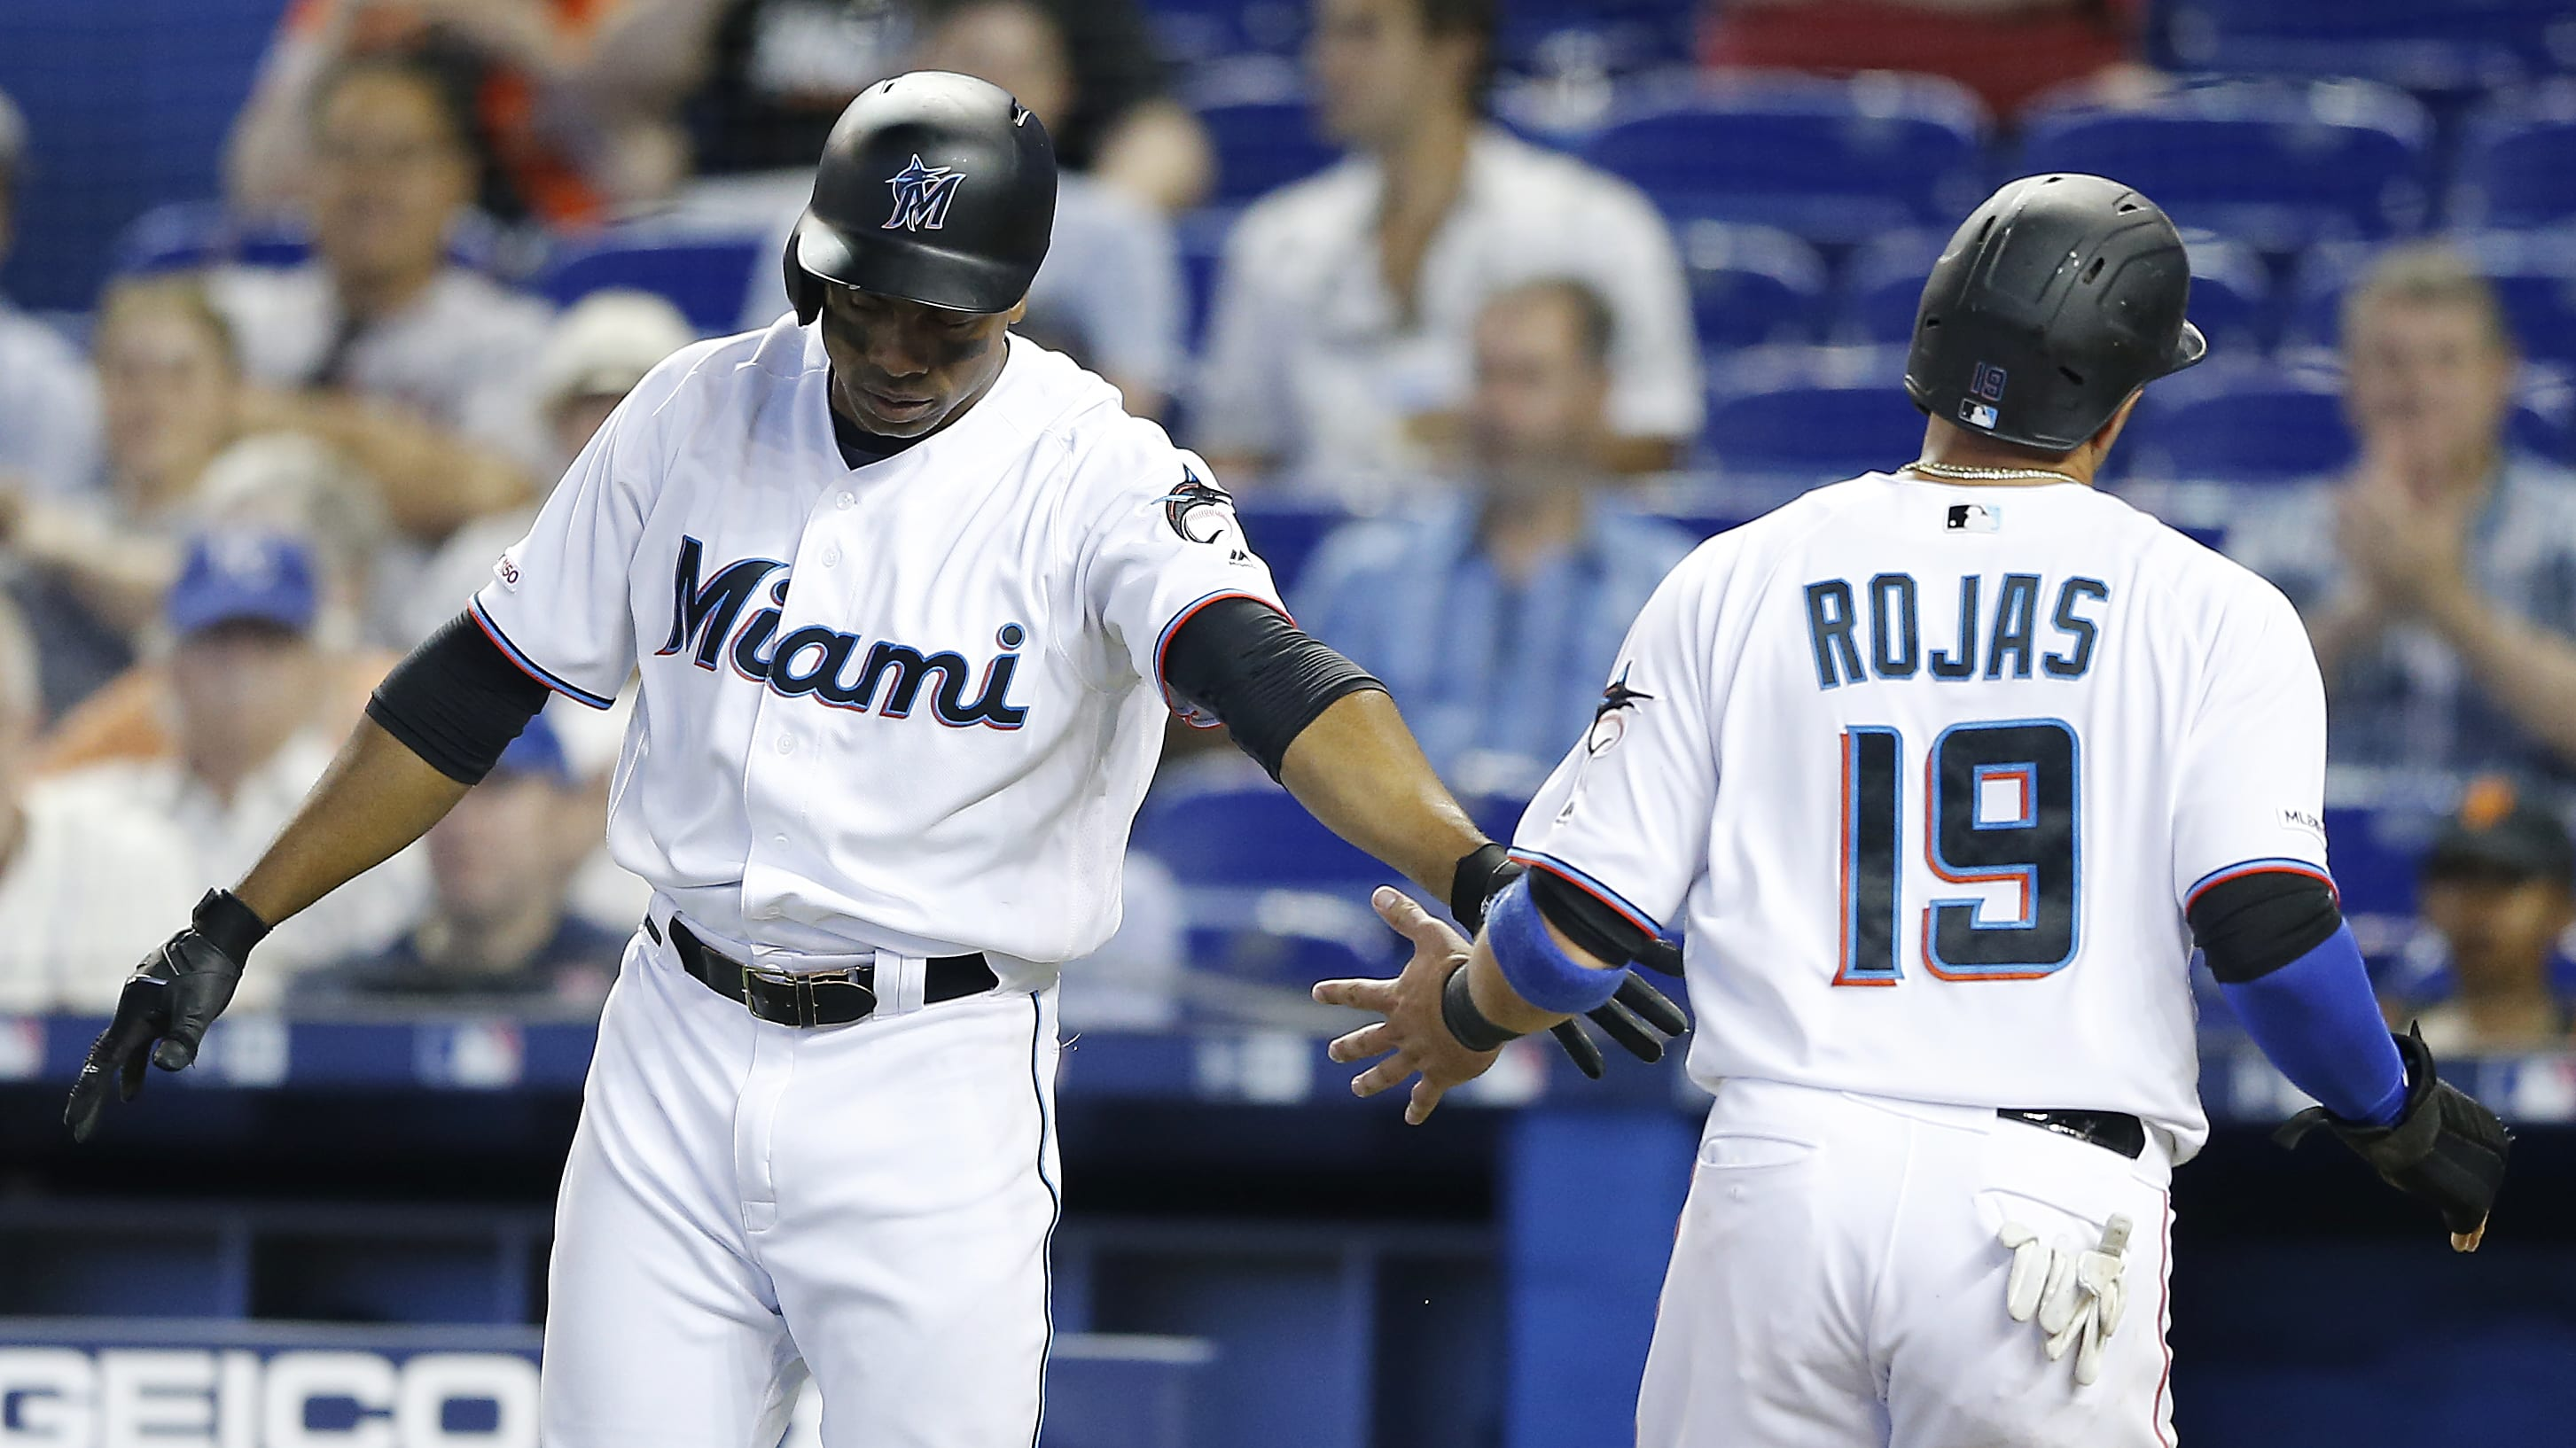 MIAMI, FLORIDA - MAY 30: Miguel Rojas #19 of the Miami Marlins celebrates with Curtis Granderson #21 after scoring a run in the second inning against the San Francisco Giants at Marlins Park on May 30, 2019 in Miami, Florida. (Photo by Michael Reaves/Getty Images)